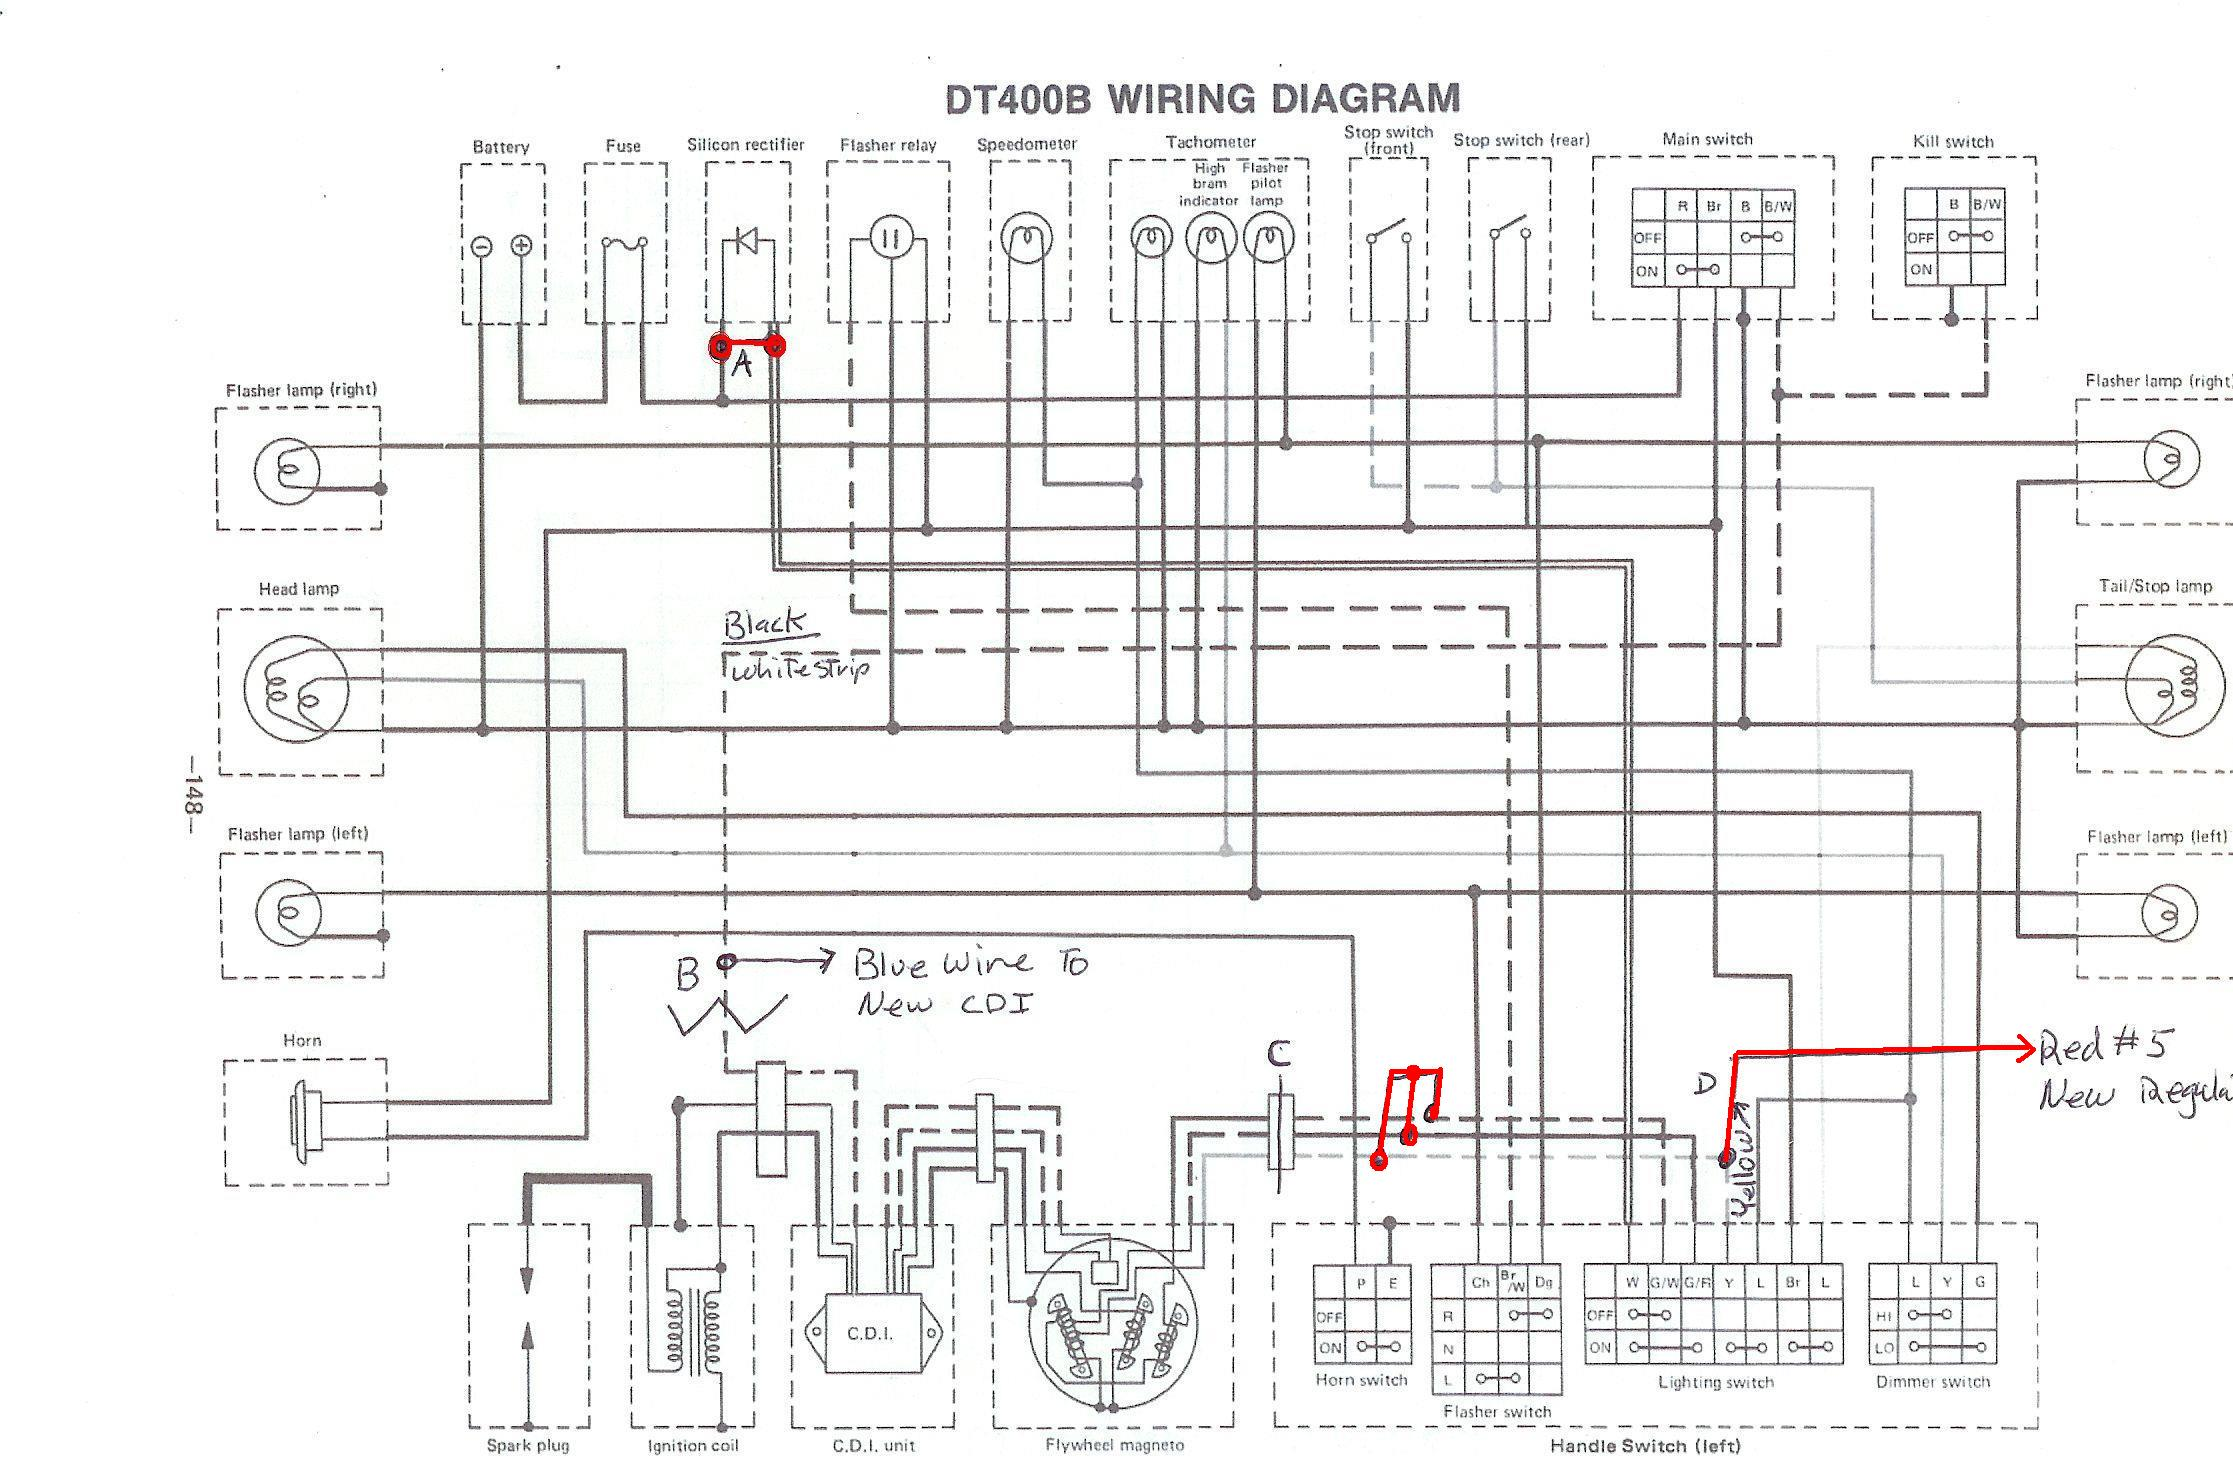 powerdynamo for yamaha dt1 2 3 rt1 2 3 dt250 360 400 ty250 yza250 rh powerdynamo biz Wiring Diagram Symbols Schematic Circuit Diagram